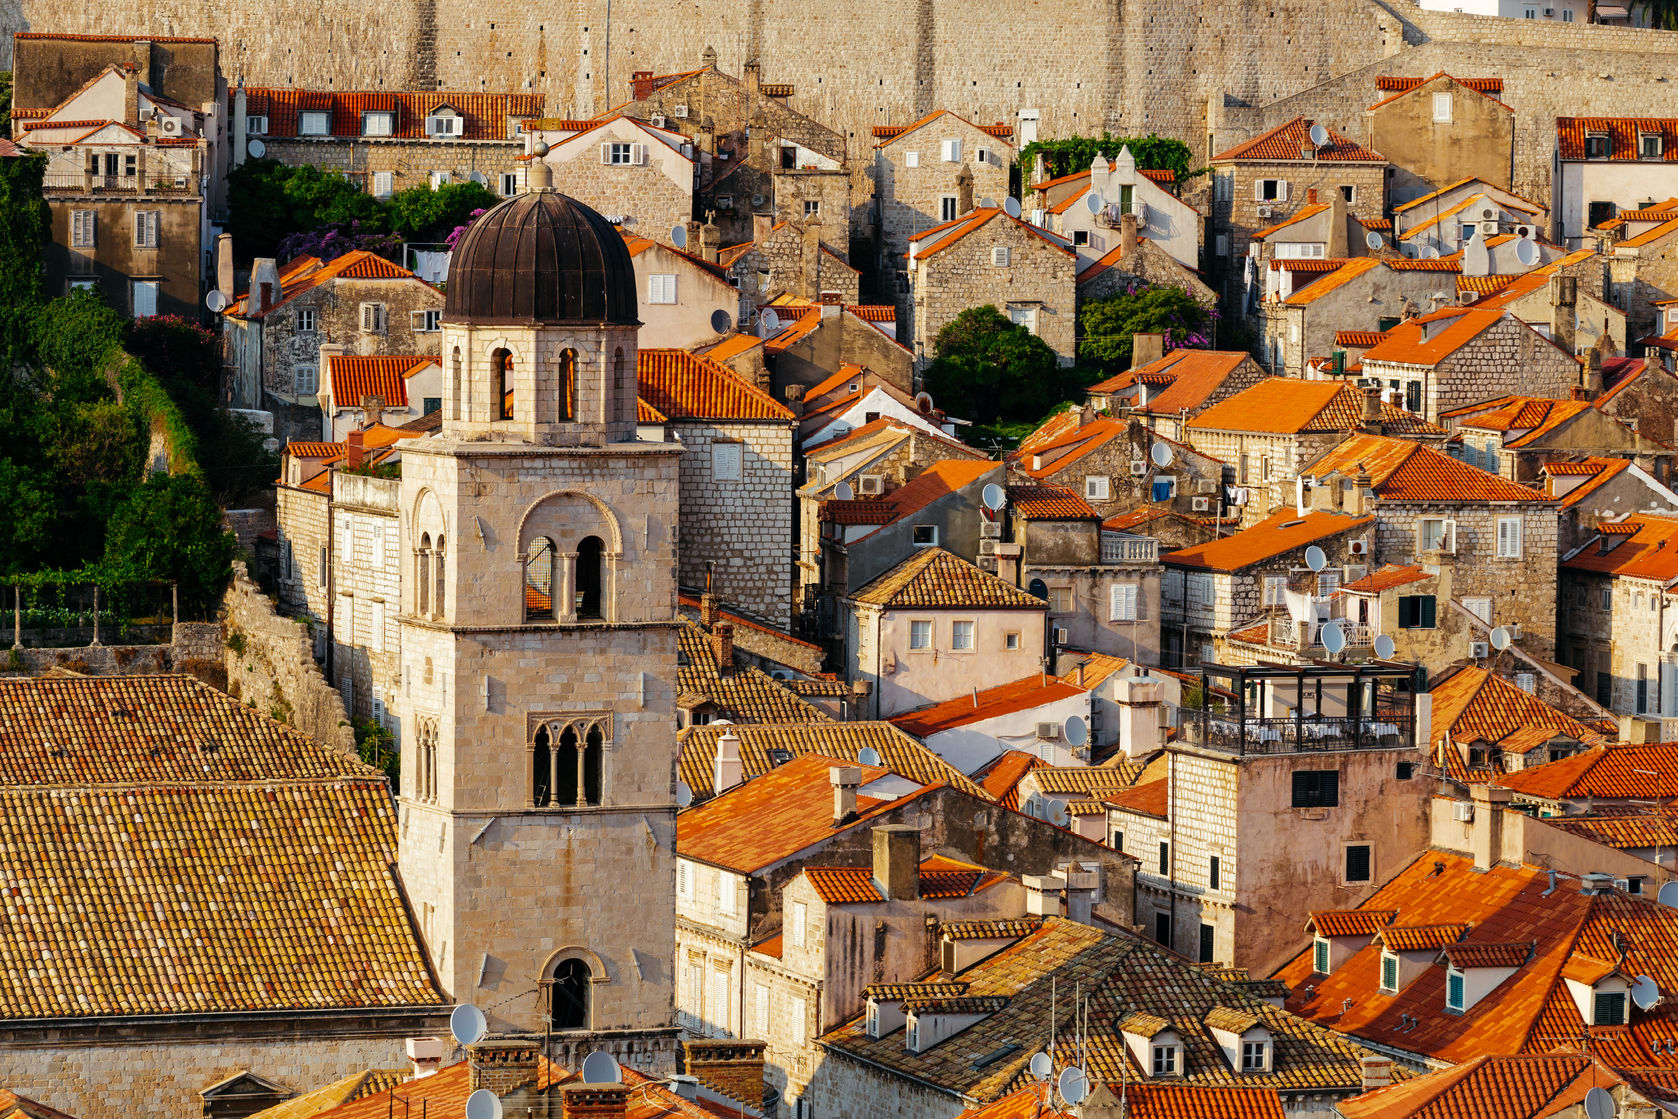 77089327 - franciscan monastery and museum in the background of roofs with tiles in dubrovnik, croatia.